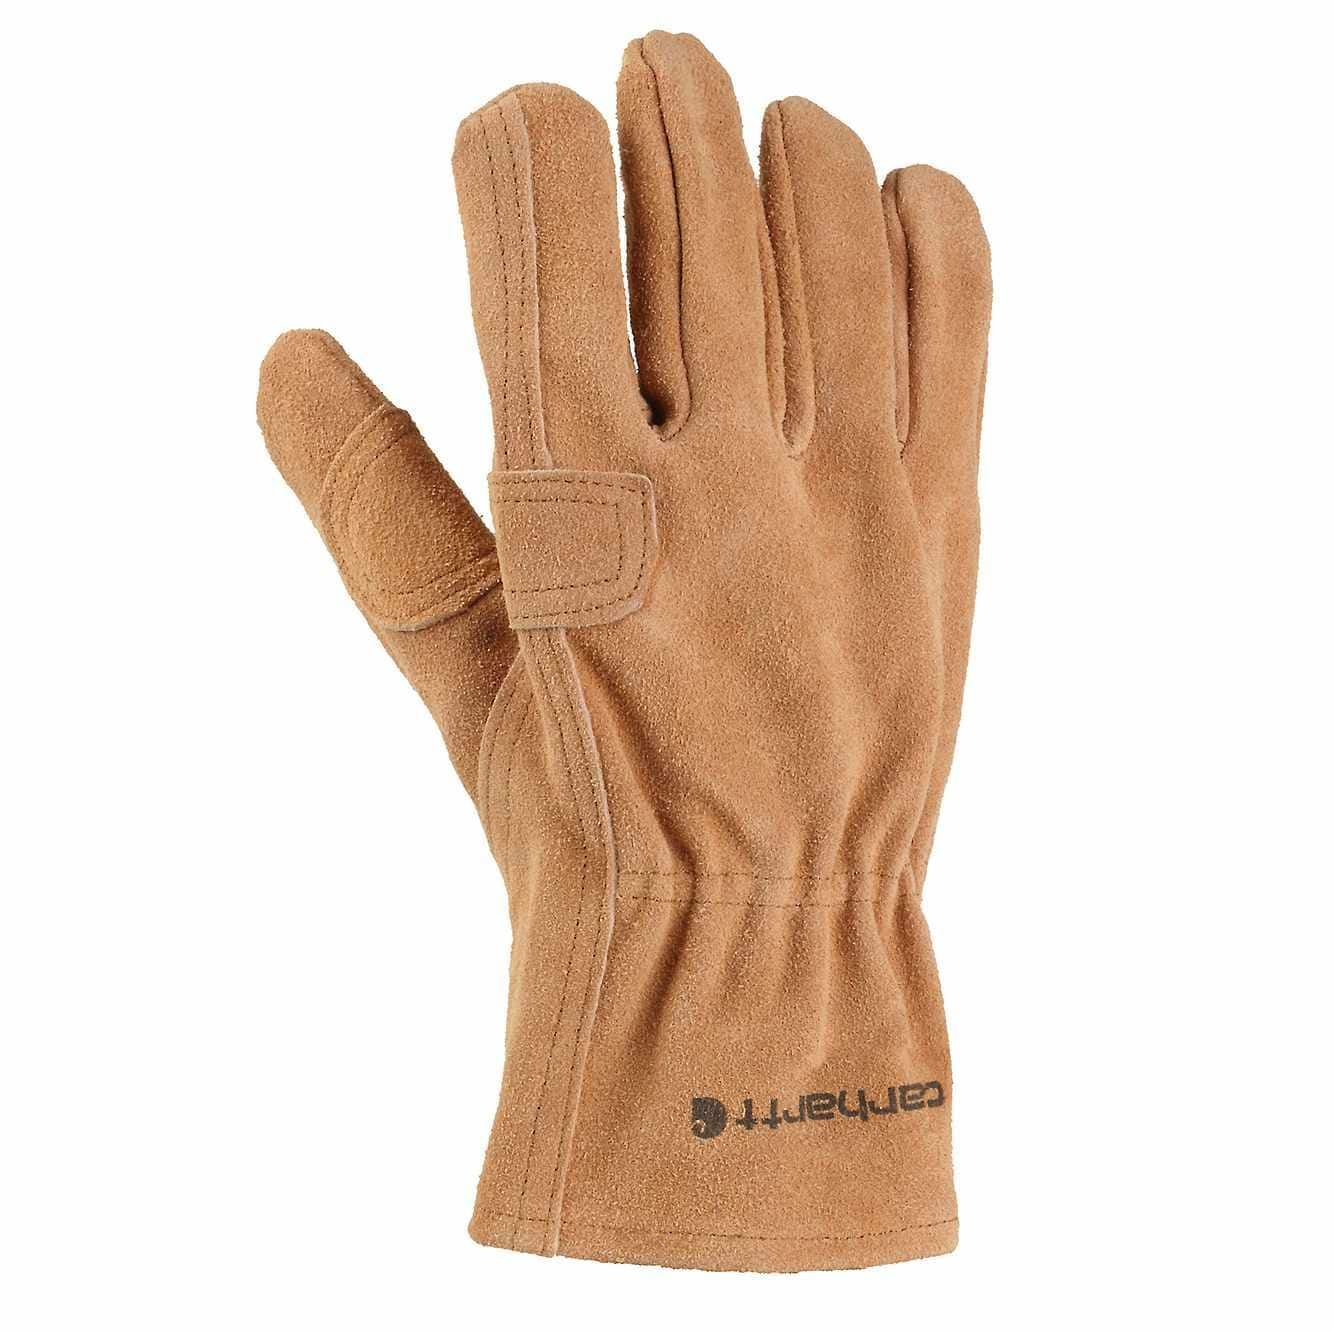 Men's Carhartt Fencer Work Glove #A553BRN